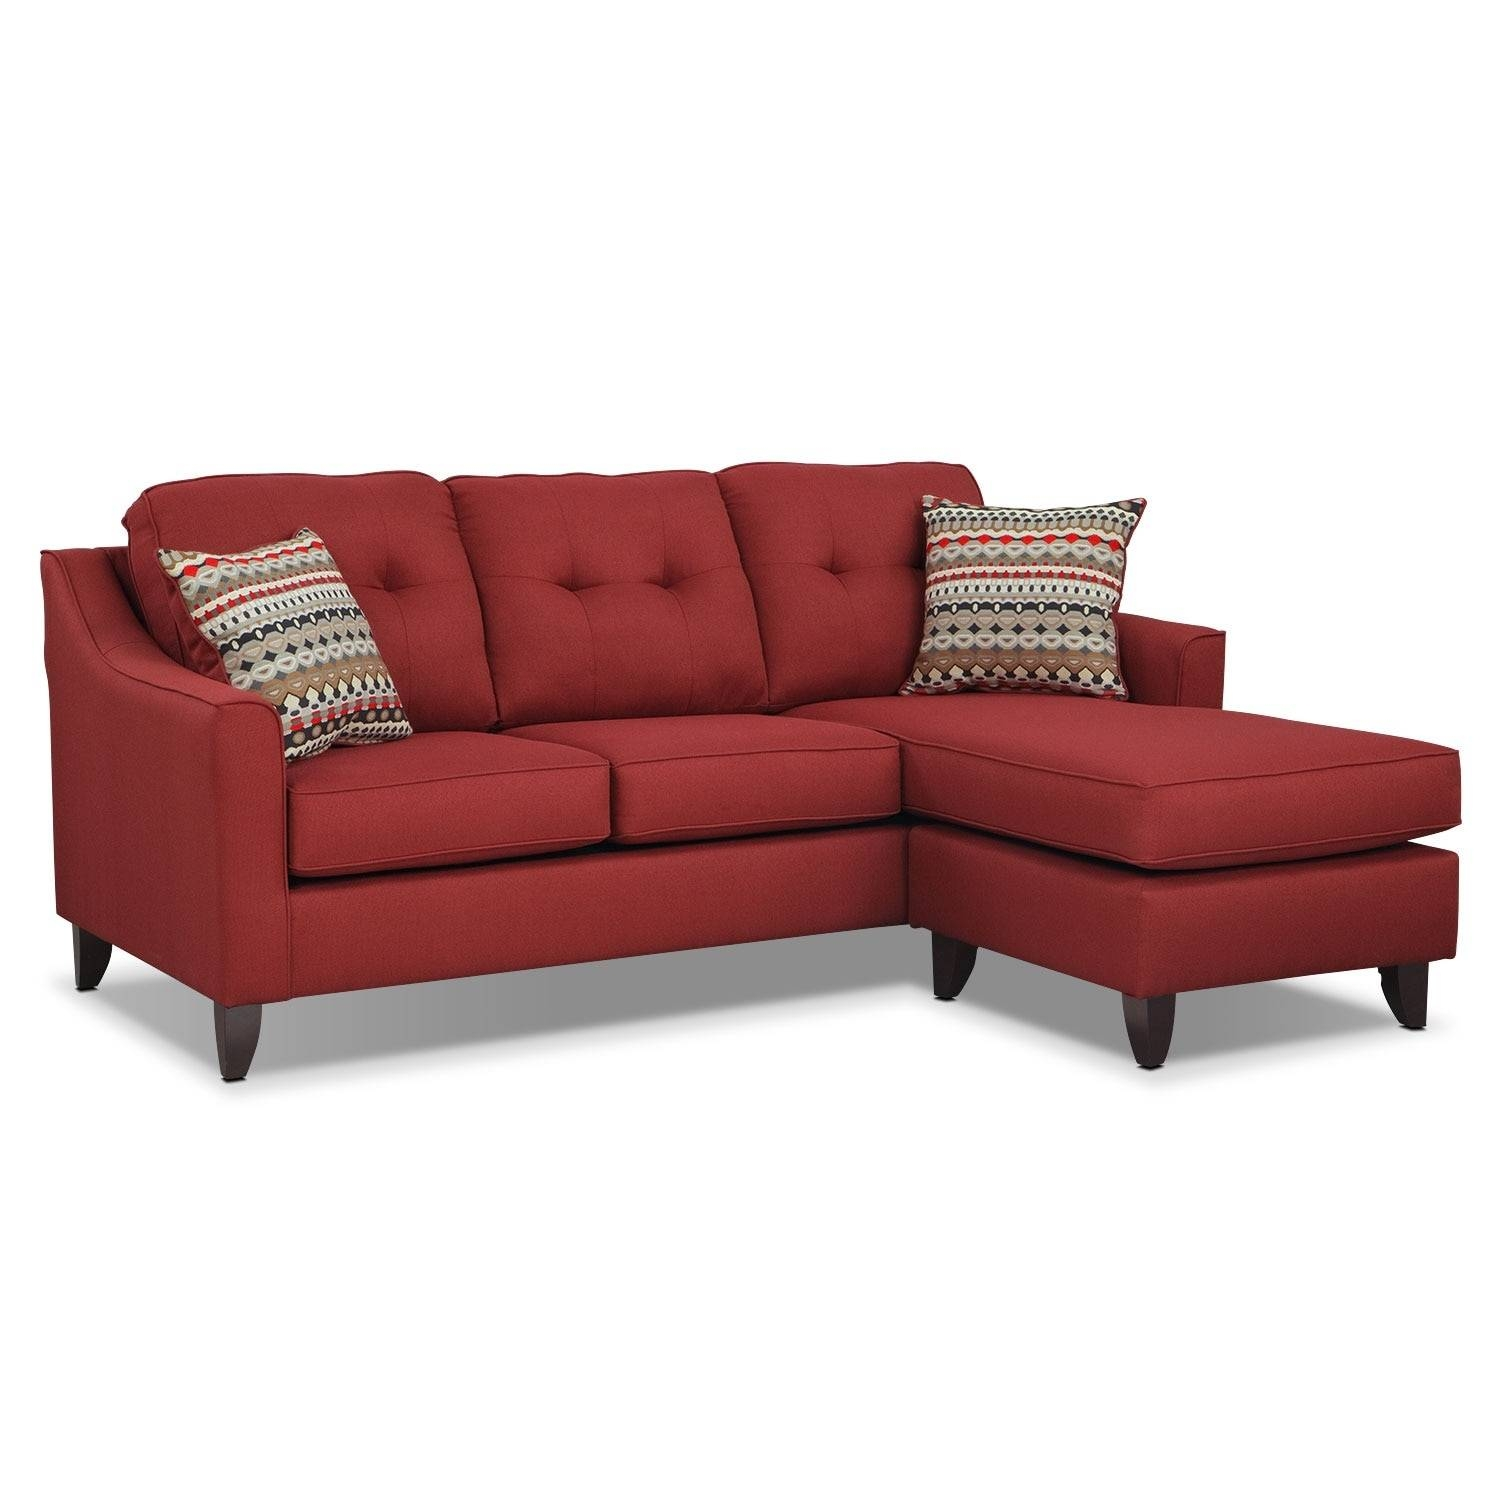 Marco Chaise Sofa - Red | Value City Furniture for Chaise Sofas (Image 12 of 15)